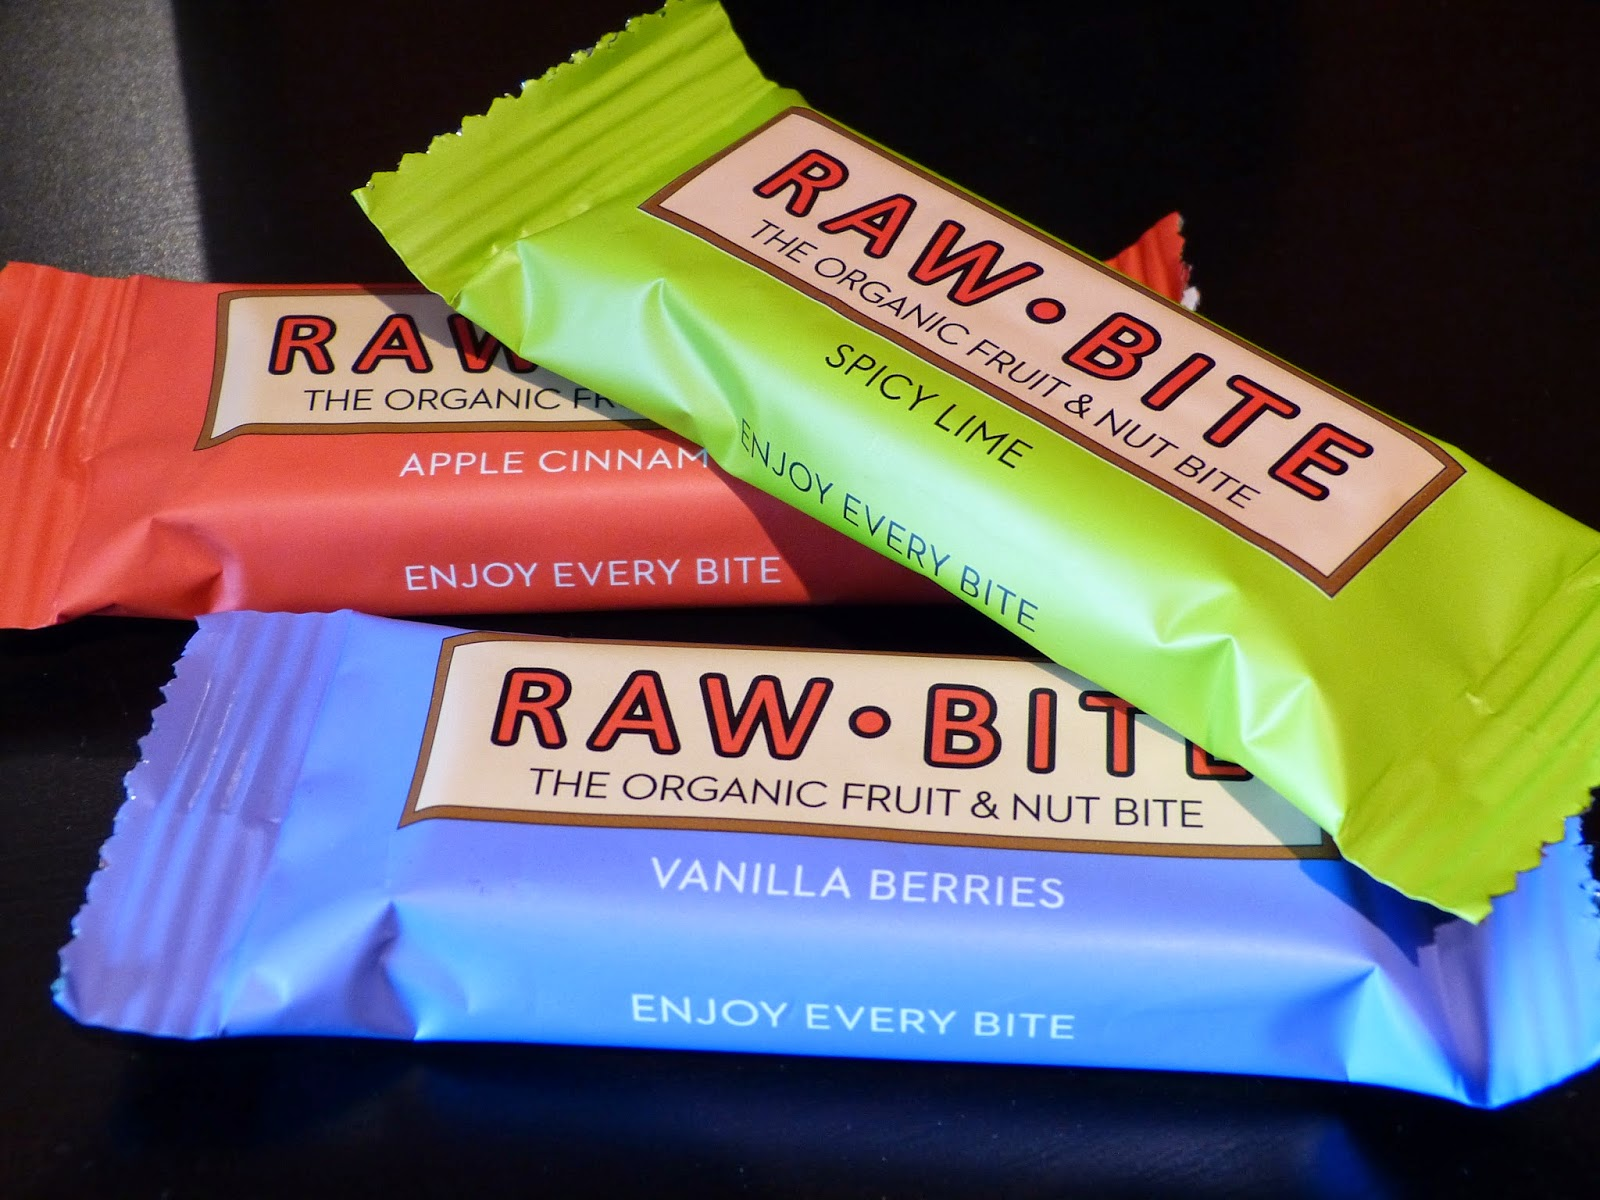 Review on raw bite bars